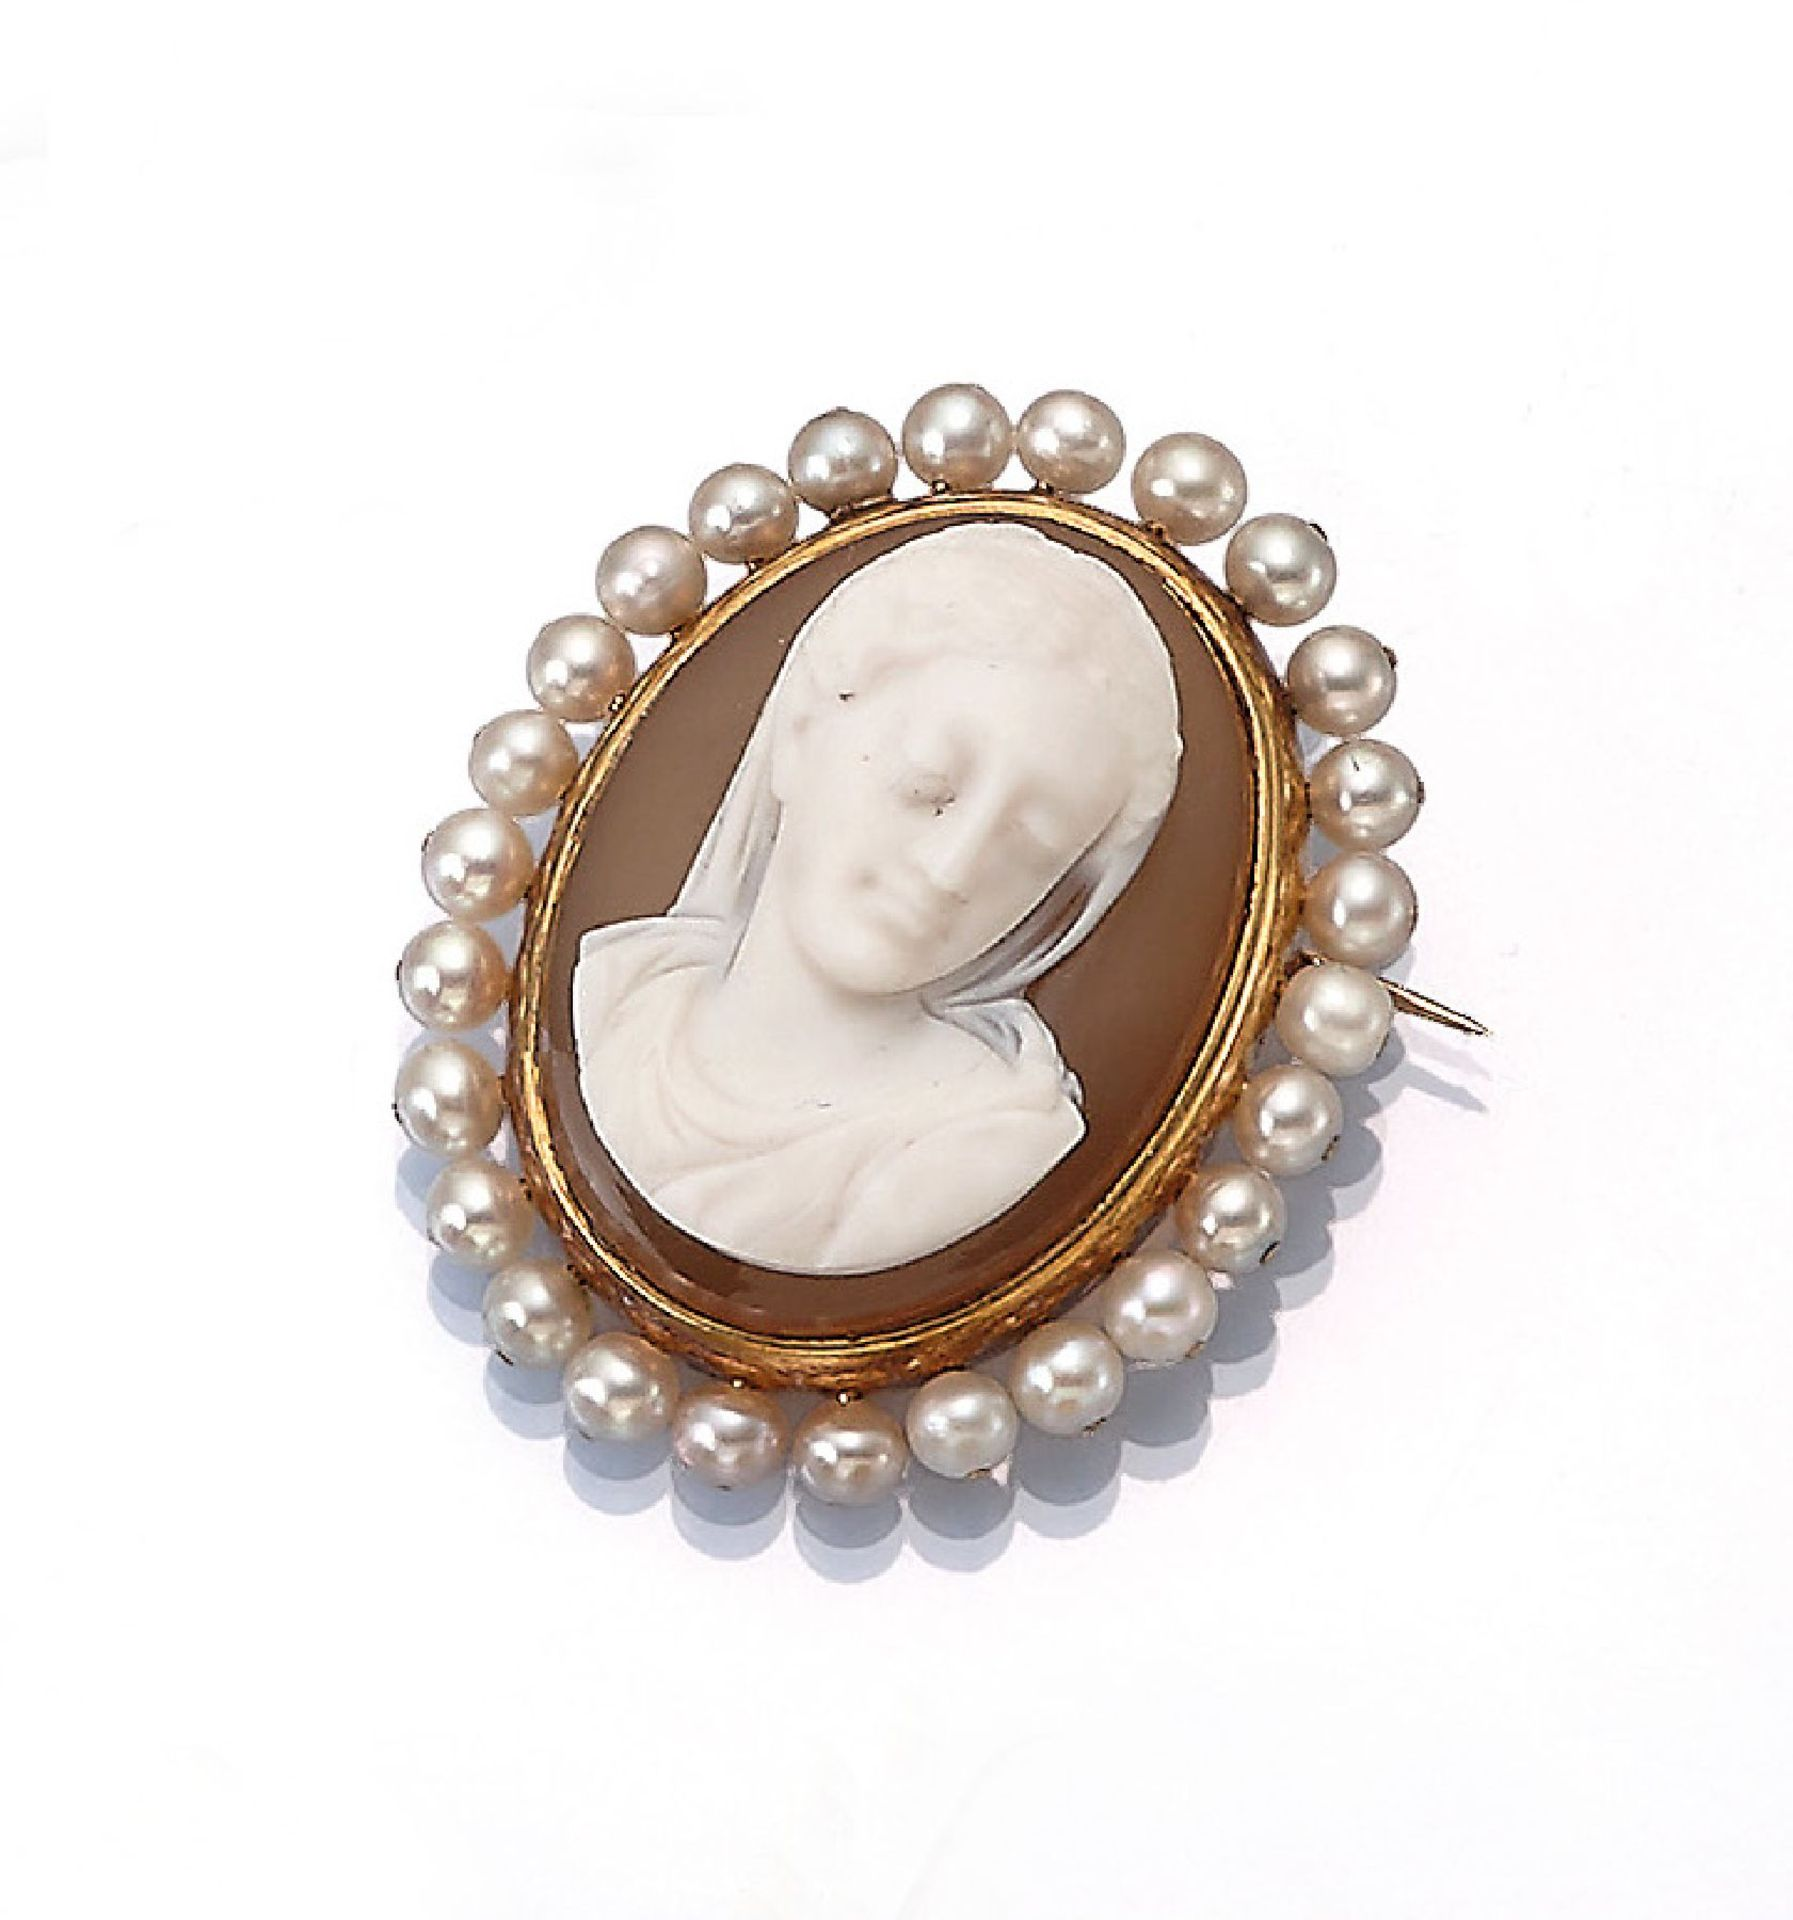 Los 61509 - 14 kt gold brooch with cameo and pearl , YG 585/000, agate cameo, carving, representation of